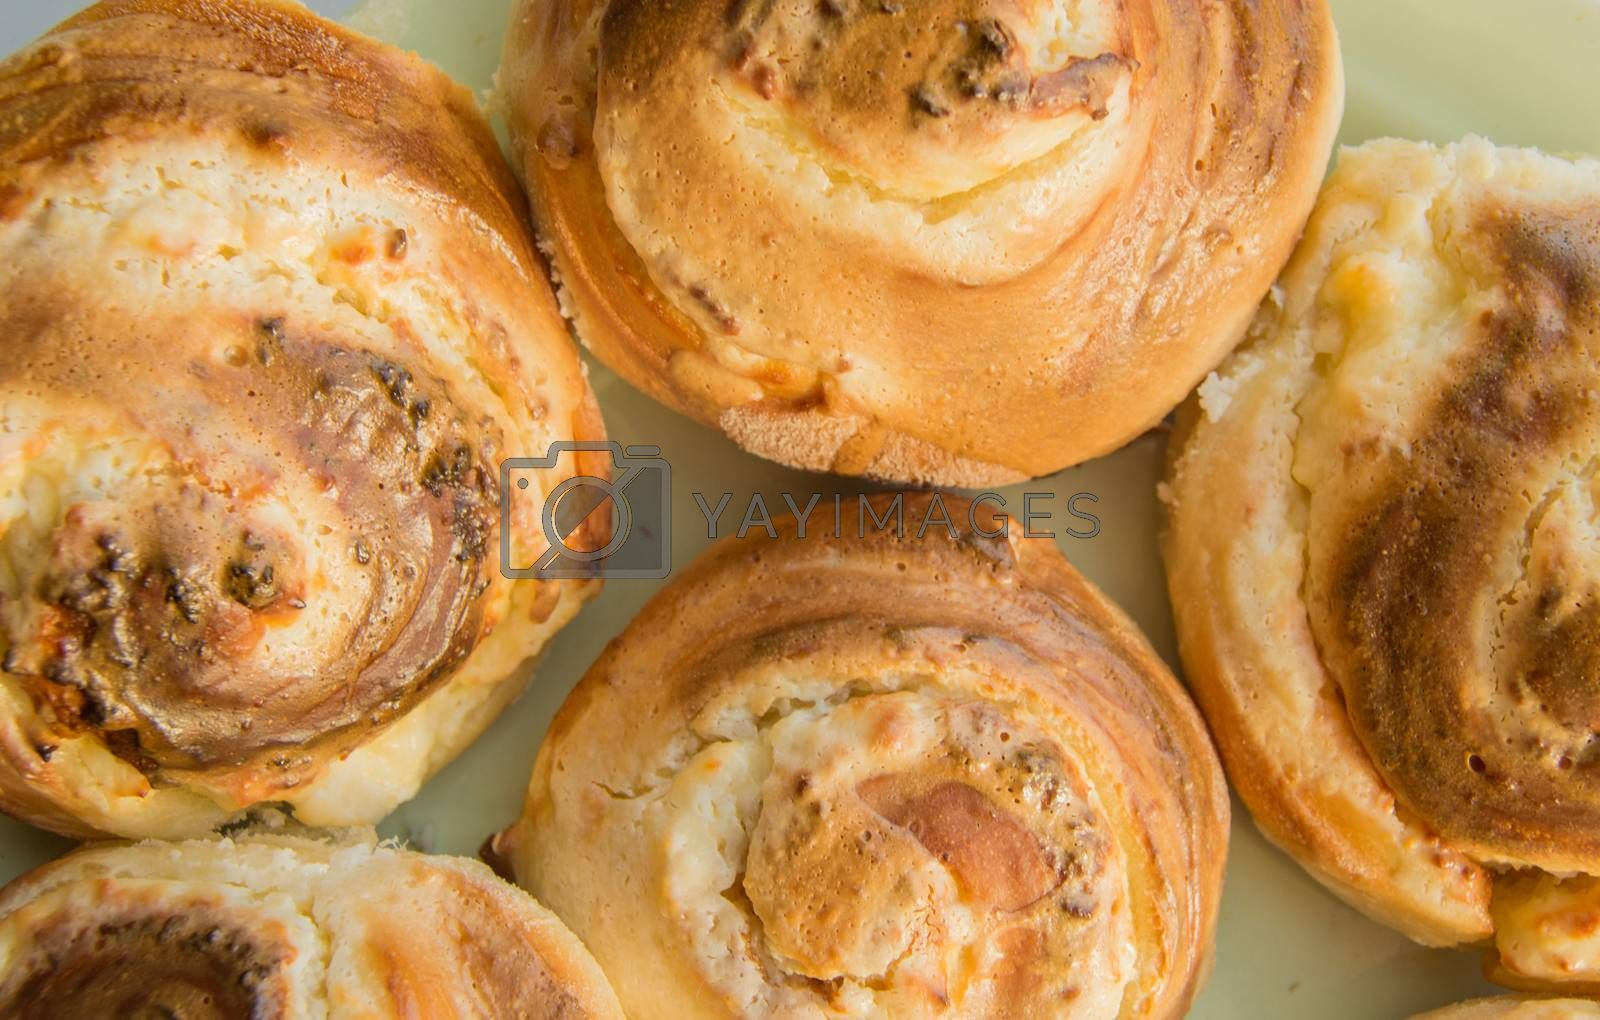 Sweet homemade cakes - delicious freshly baked cinabon top view.